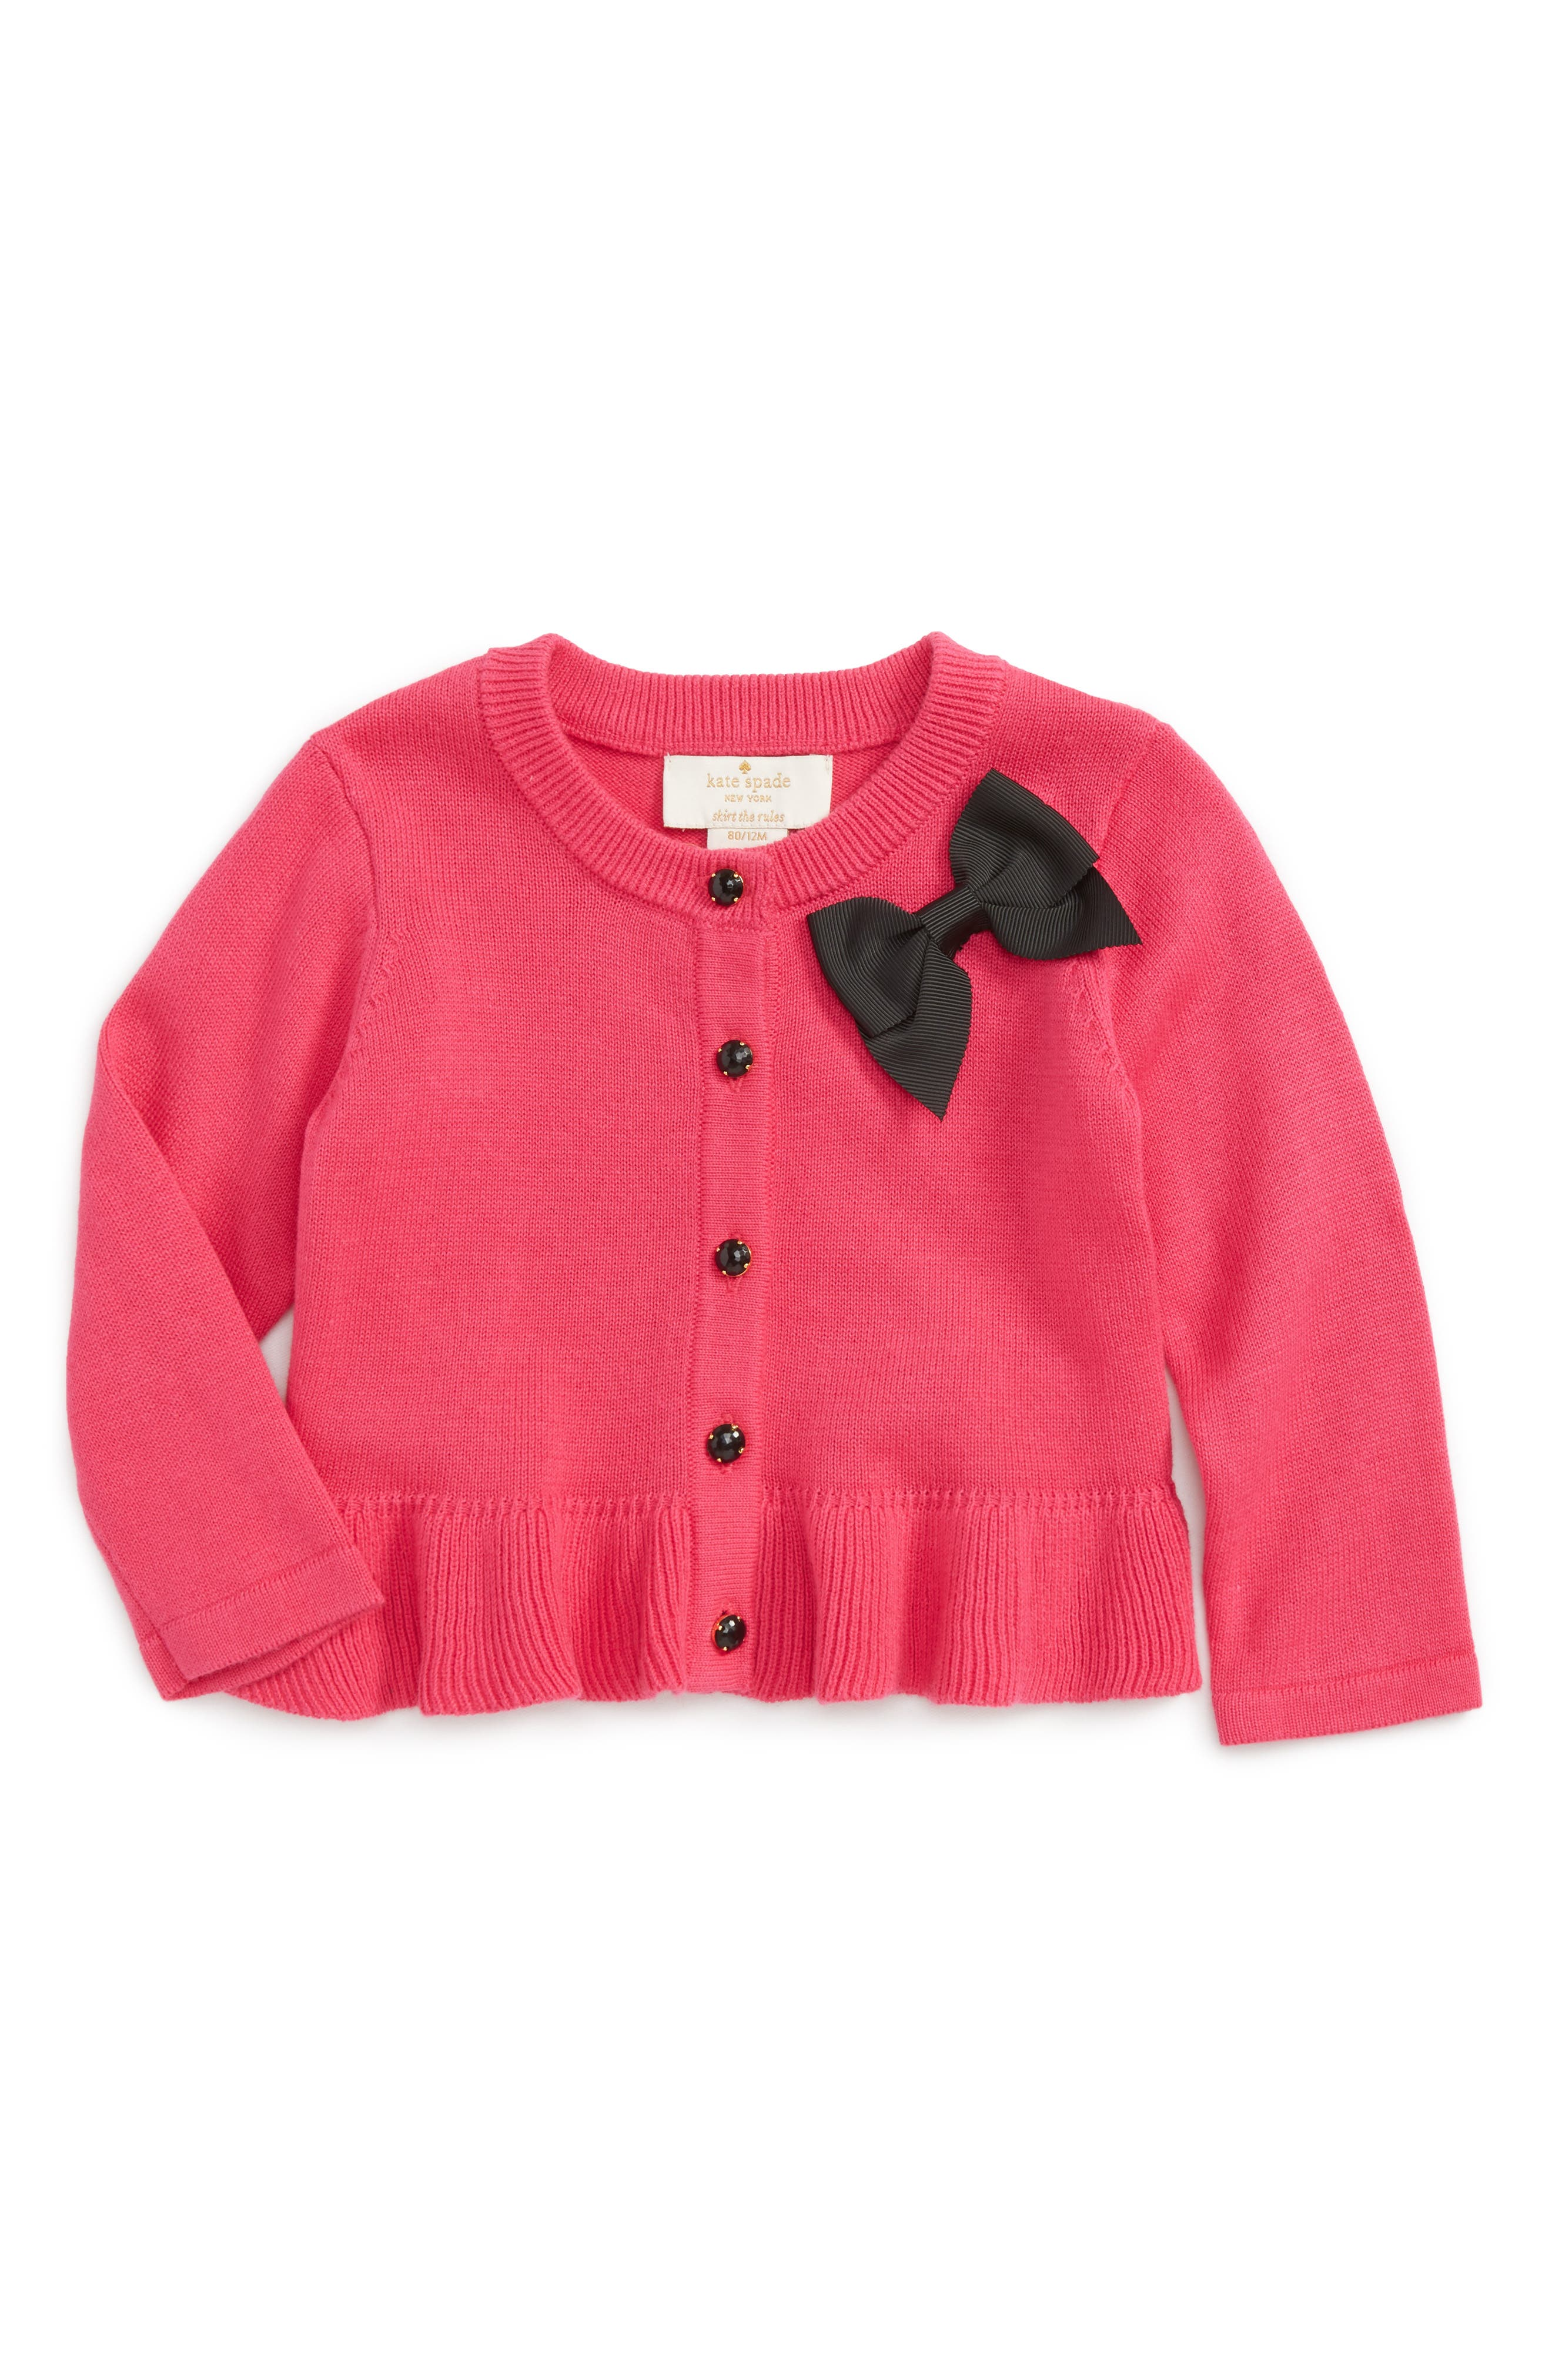 kate spade new york peplum cardigan (Baby Girls)